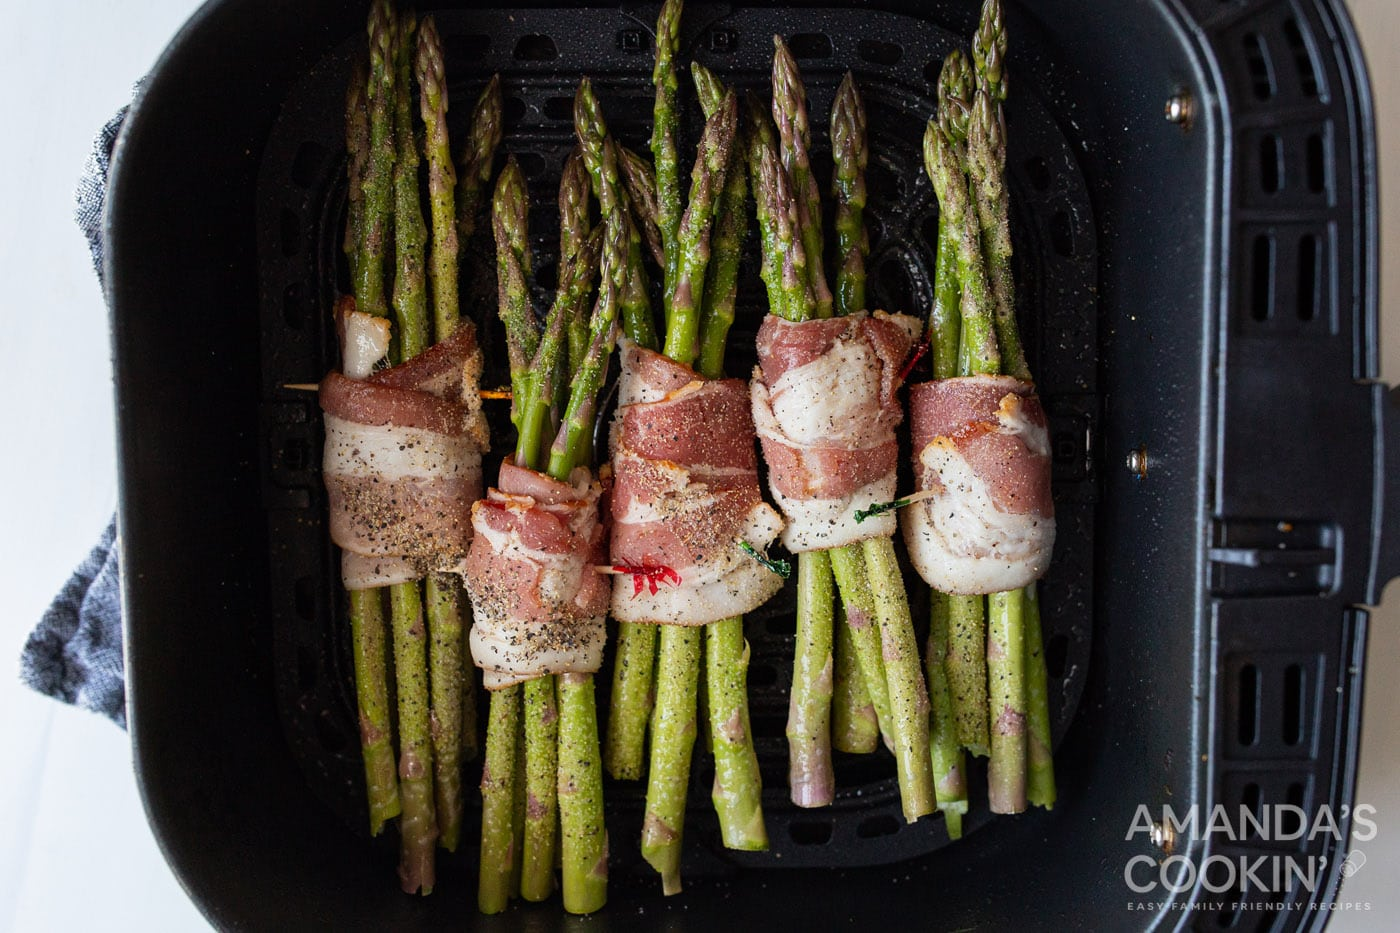 bacon wrapped asparagus in air fryer basket